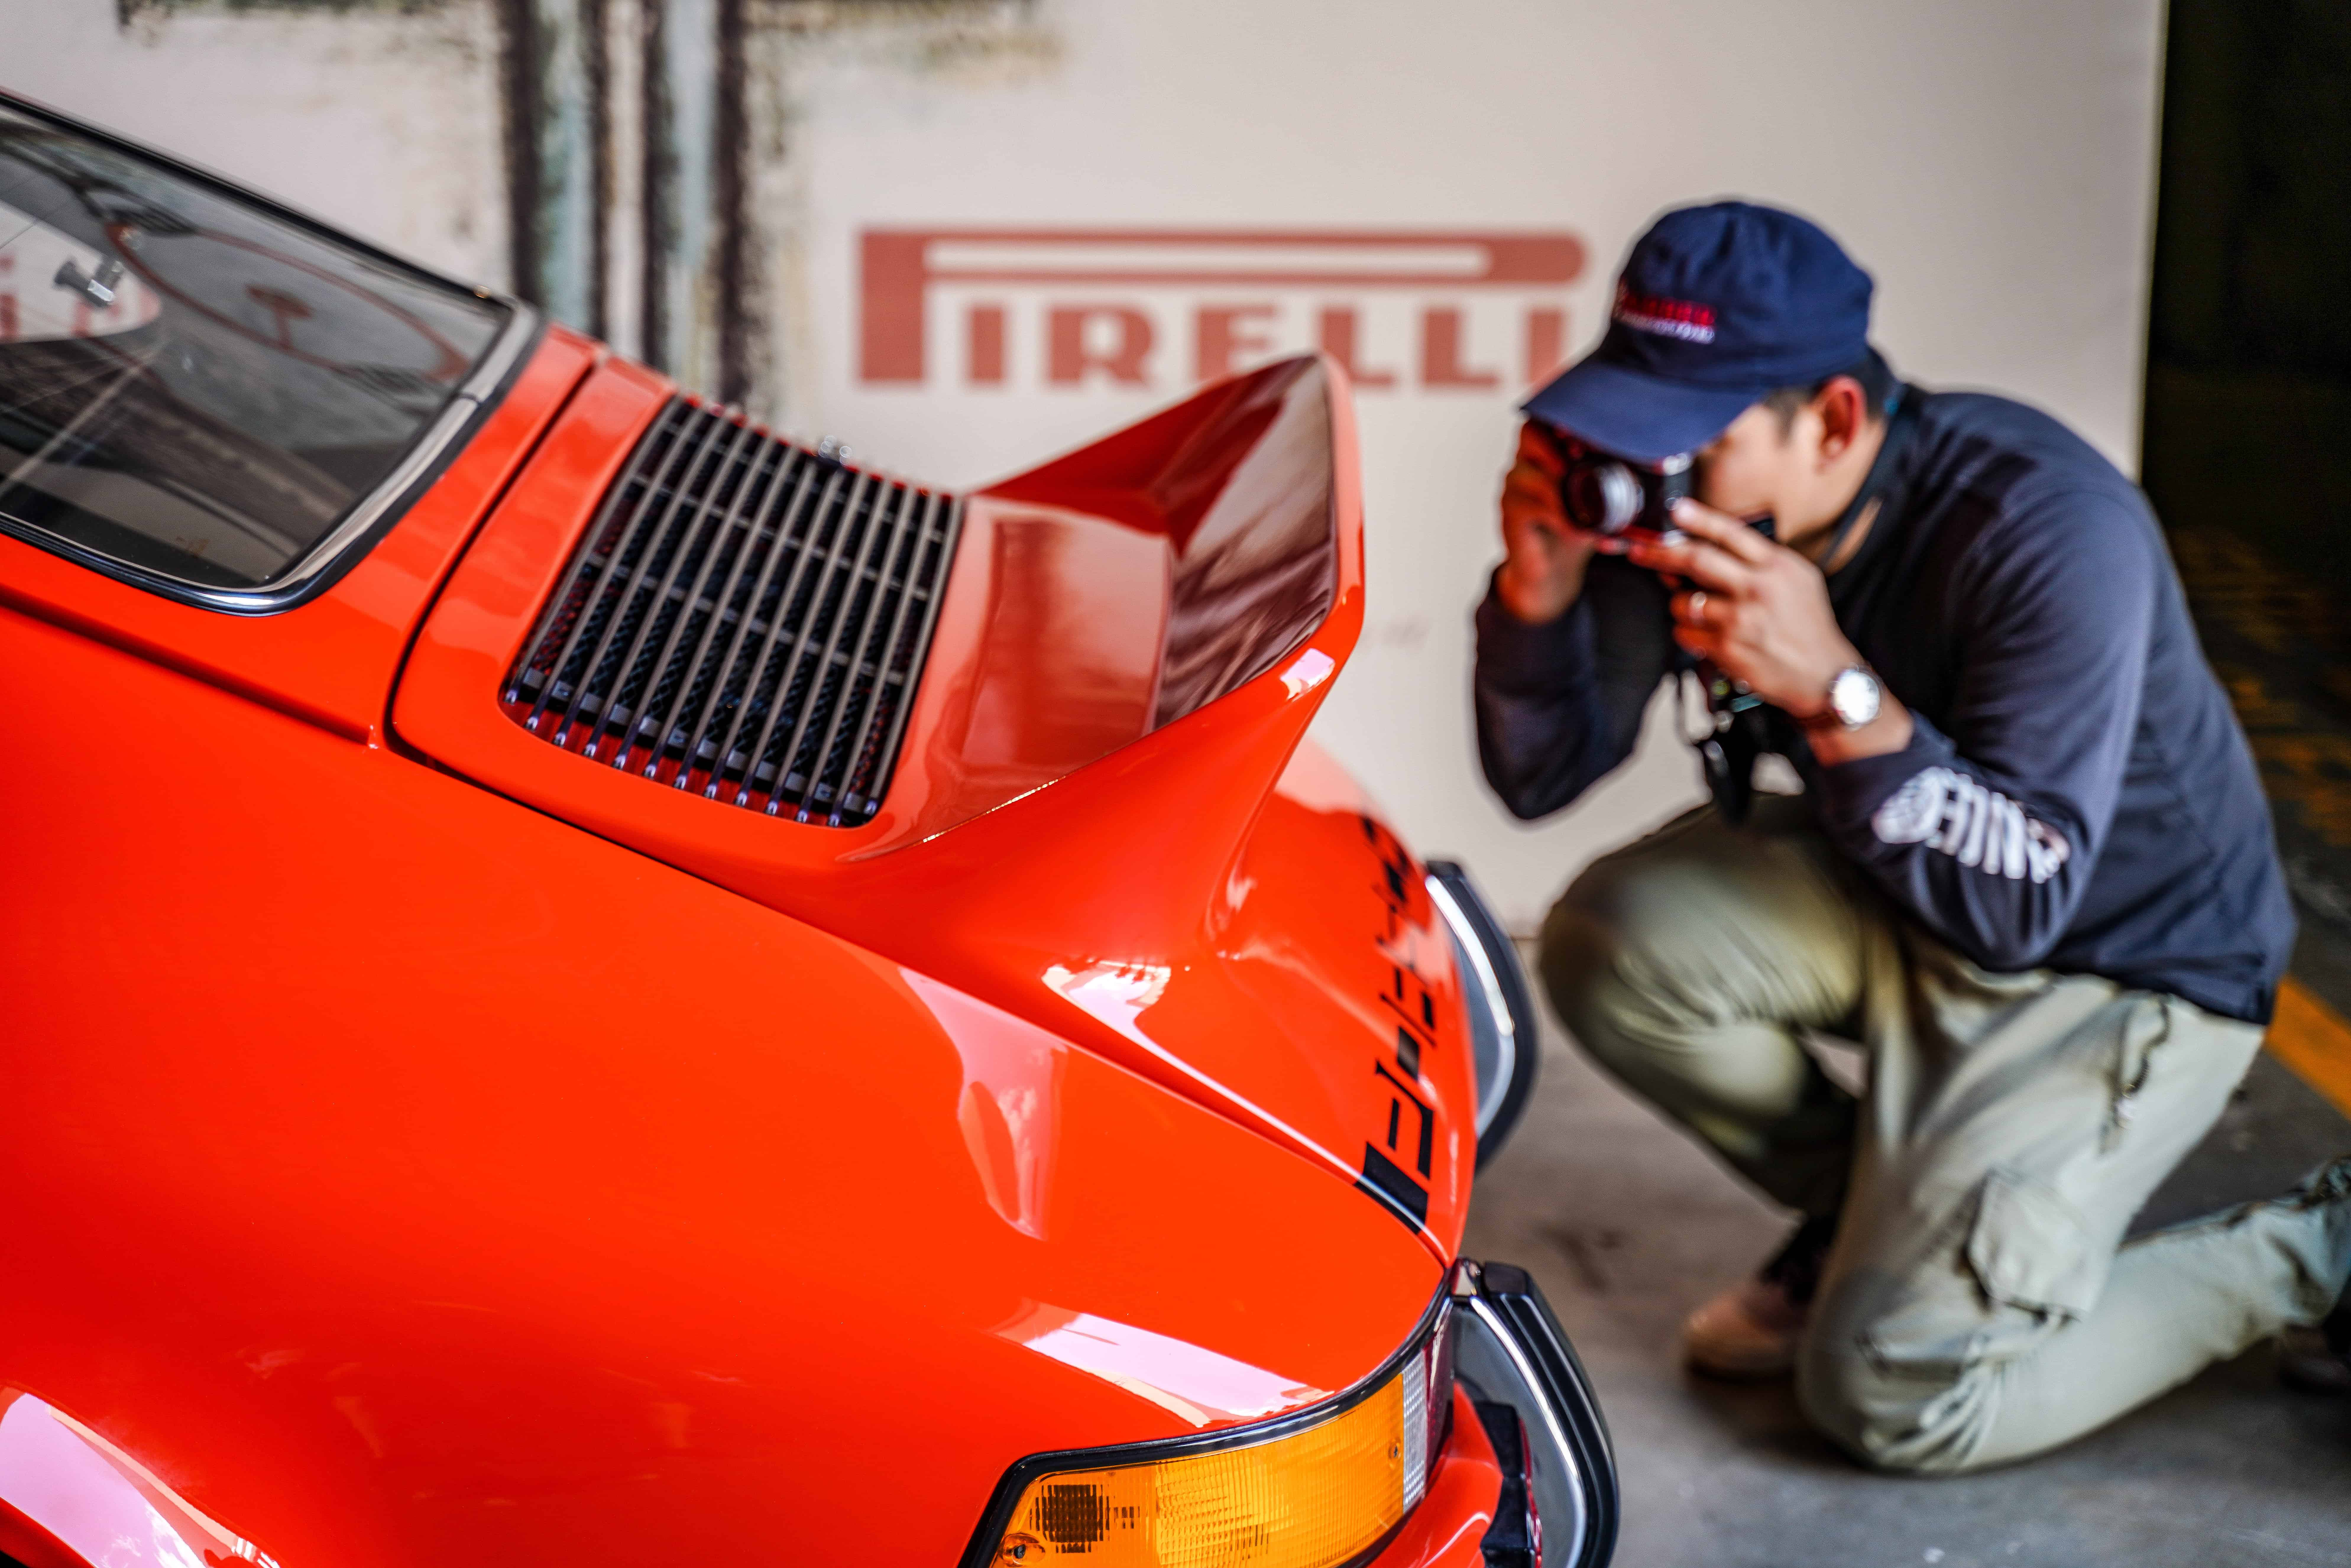 Guy taking picture of orange porsche with camera